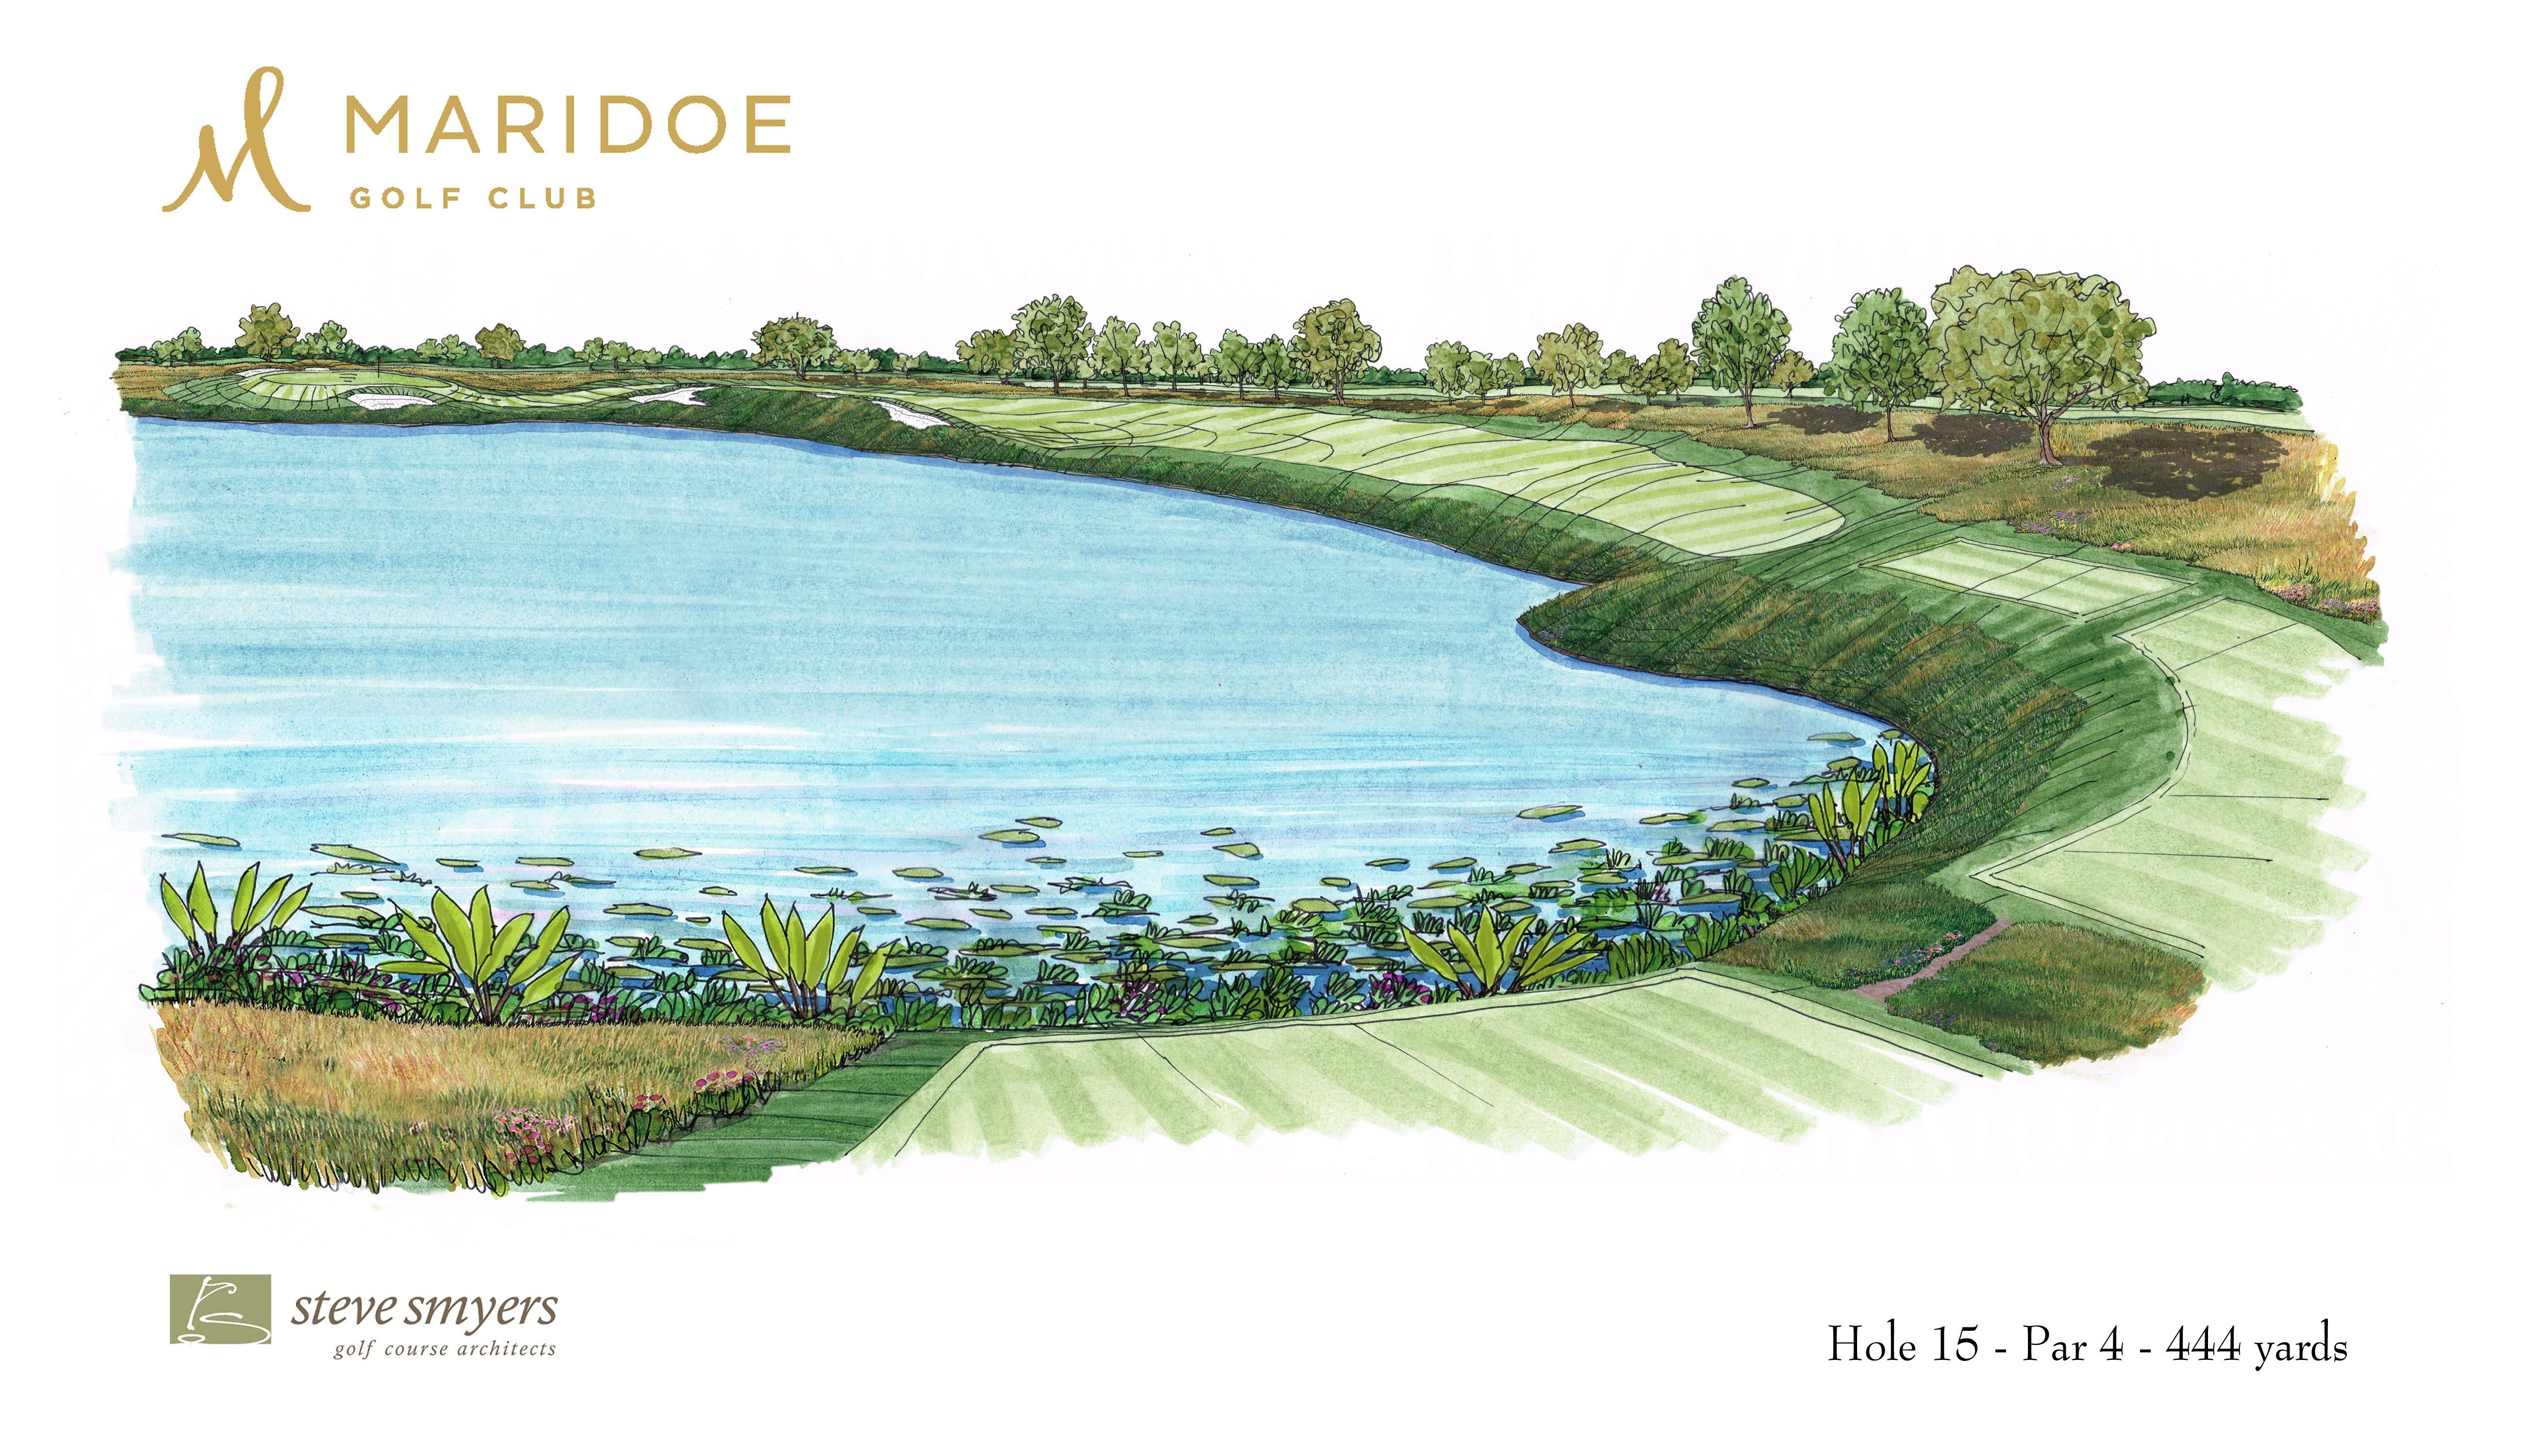 Steve Smyers Golf Course Architects   Maridoe Golf Club   Hole  15     Steve Smyers Golf Course Architects   Maridoe Golf Club   Hole  15 Sketch    stevesmyers